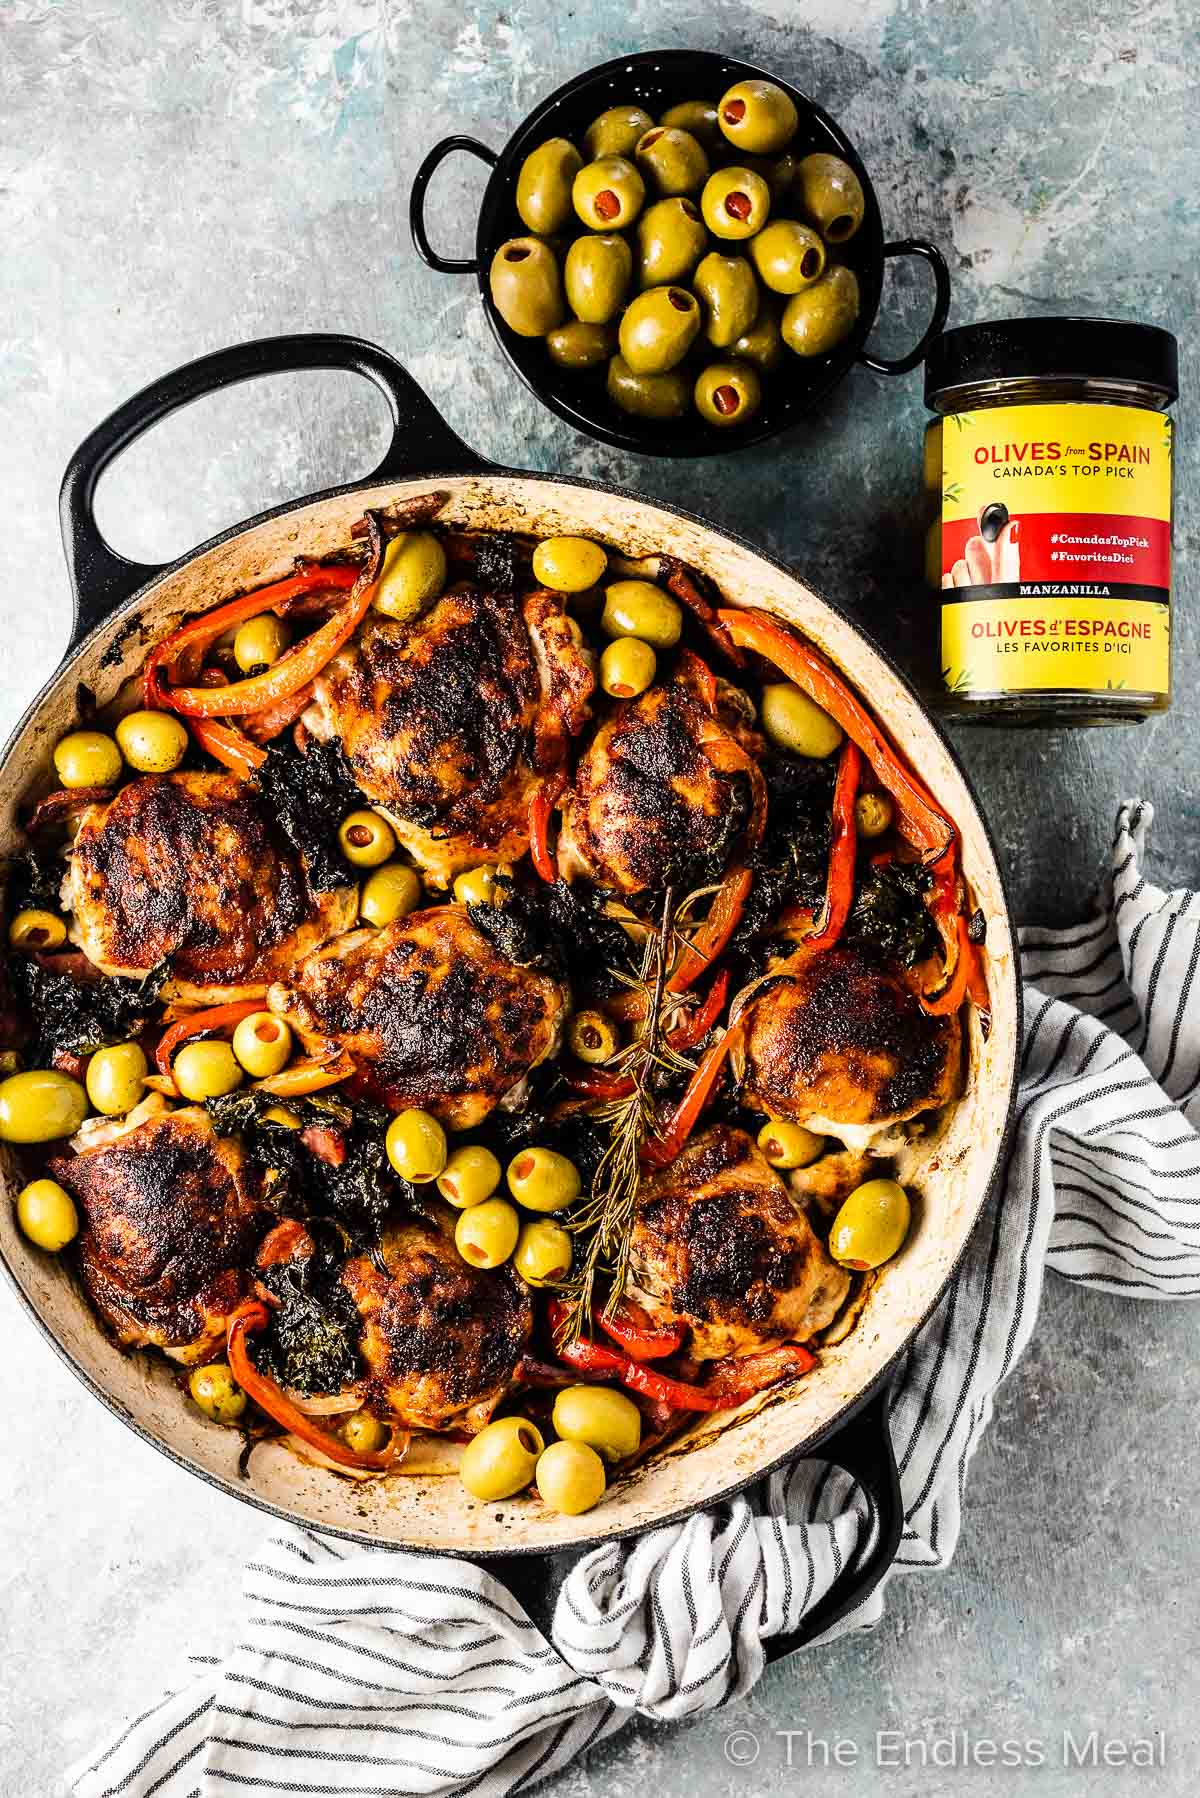 A big skillet of this Spanish chicken bake and a jar and bowl of Spanish manzanilla olives on the side.